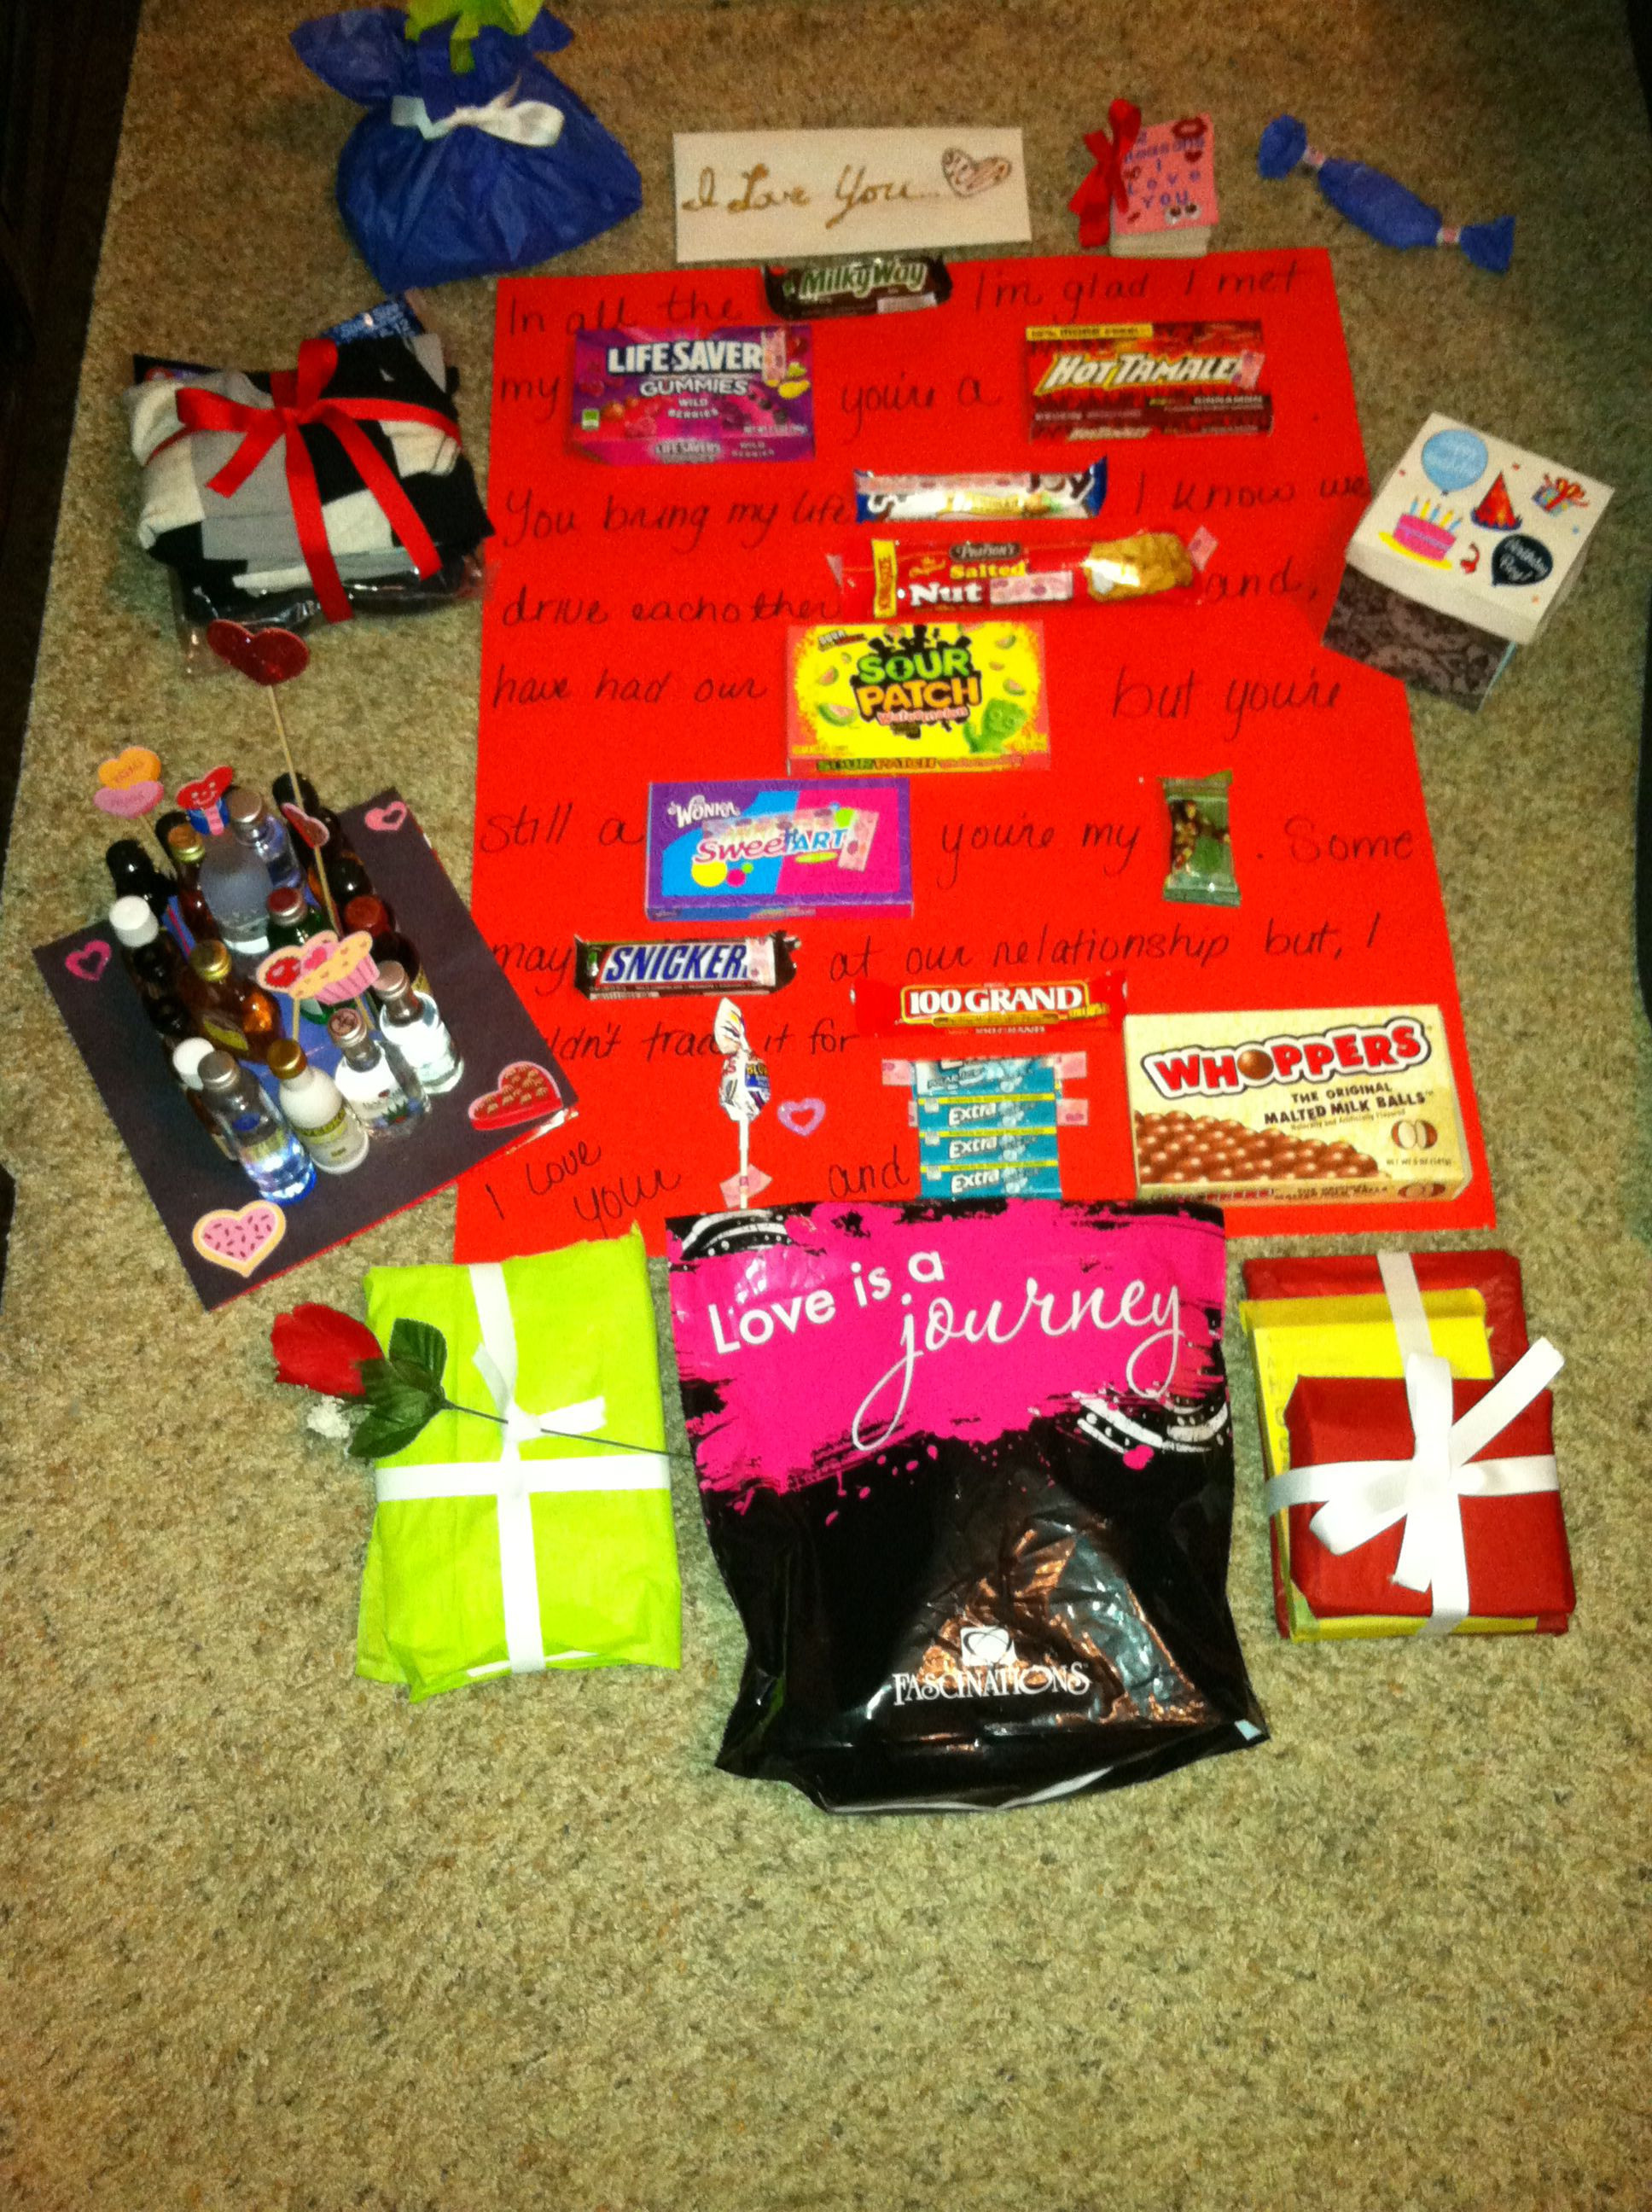 22Nd Birthday Gift Ideas  Gift Ideas for Boyfriend Gift Ideas For Boyfriend s 22nd